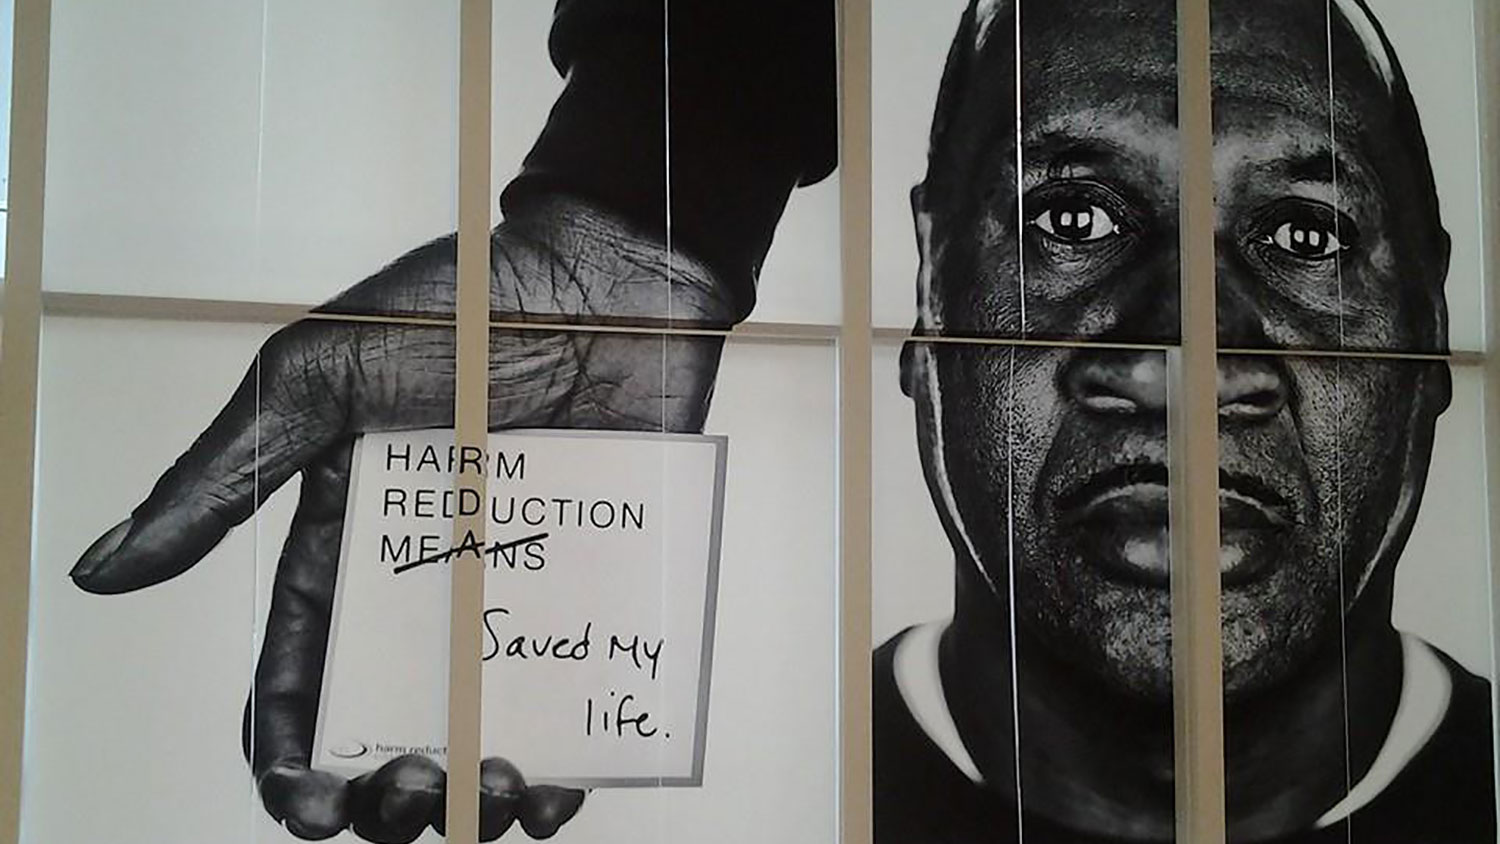 Harm Reduction Coalition